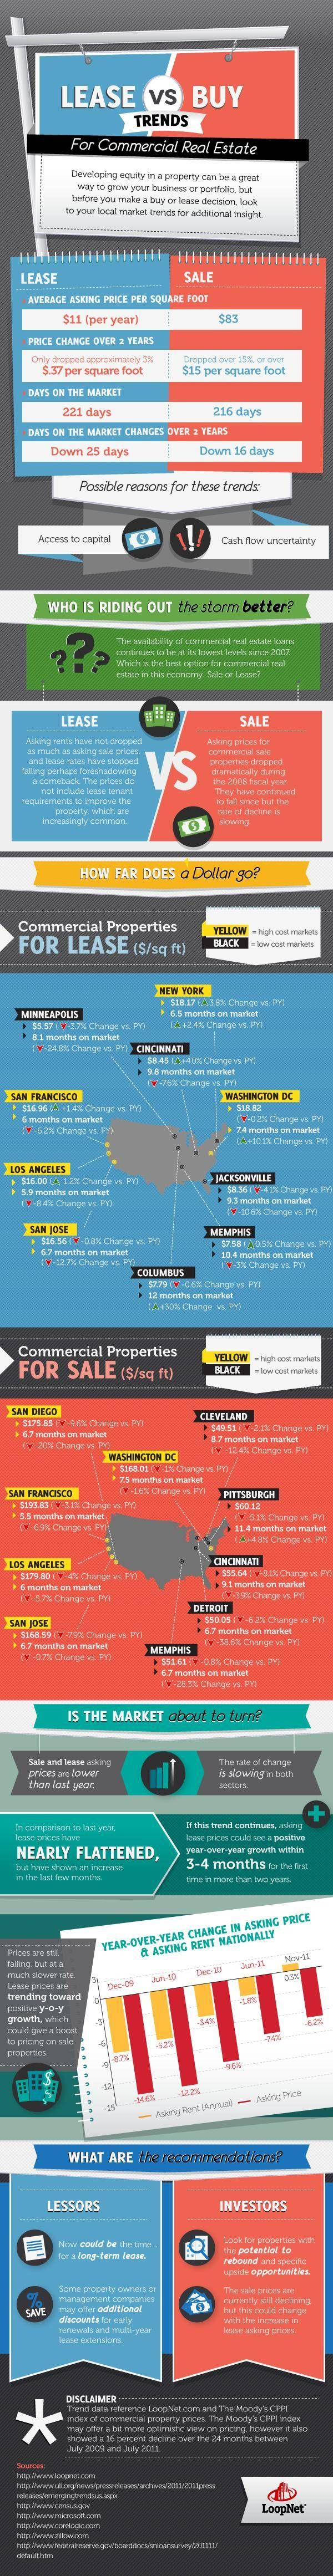 Are you in the market to buy or lease commercial real estate? Make sure you check this infographic out on when and where to purchase the right propert